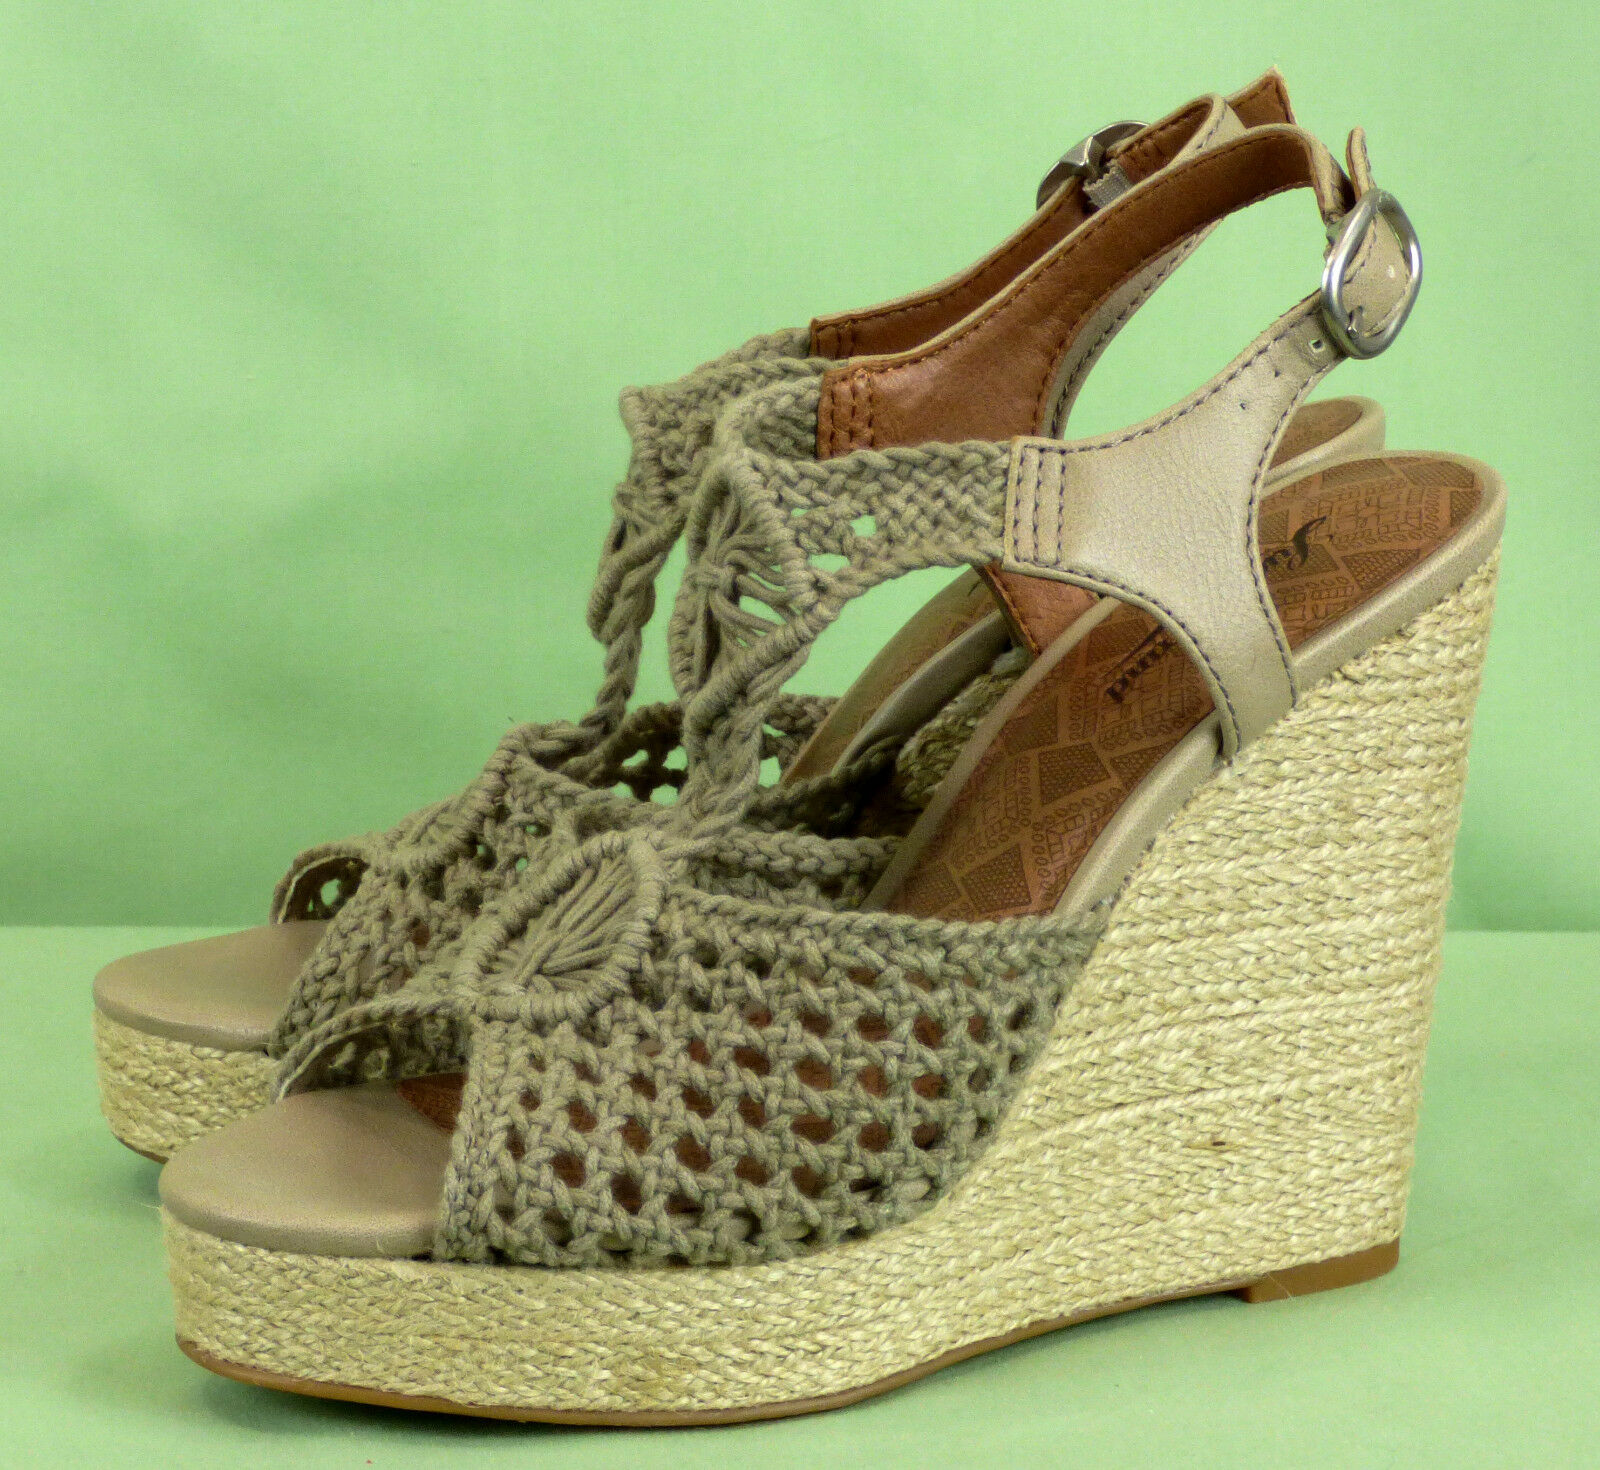 349 NWOB Lucky Brand woven wedge platform heels shoes sandals leather NEW 8.5M